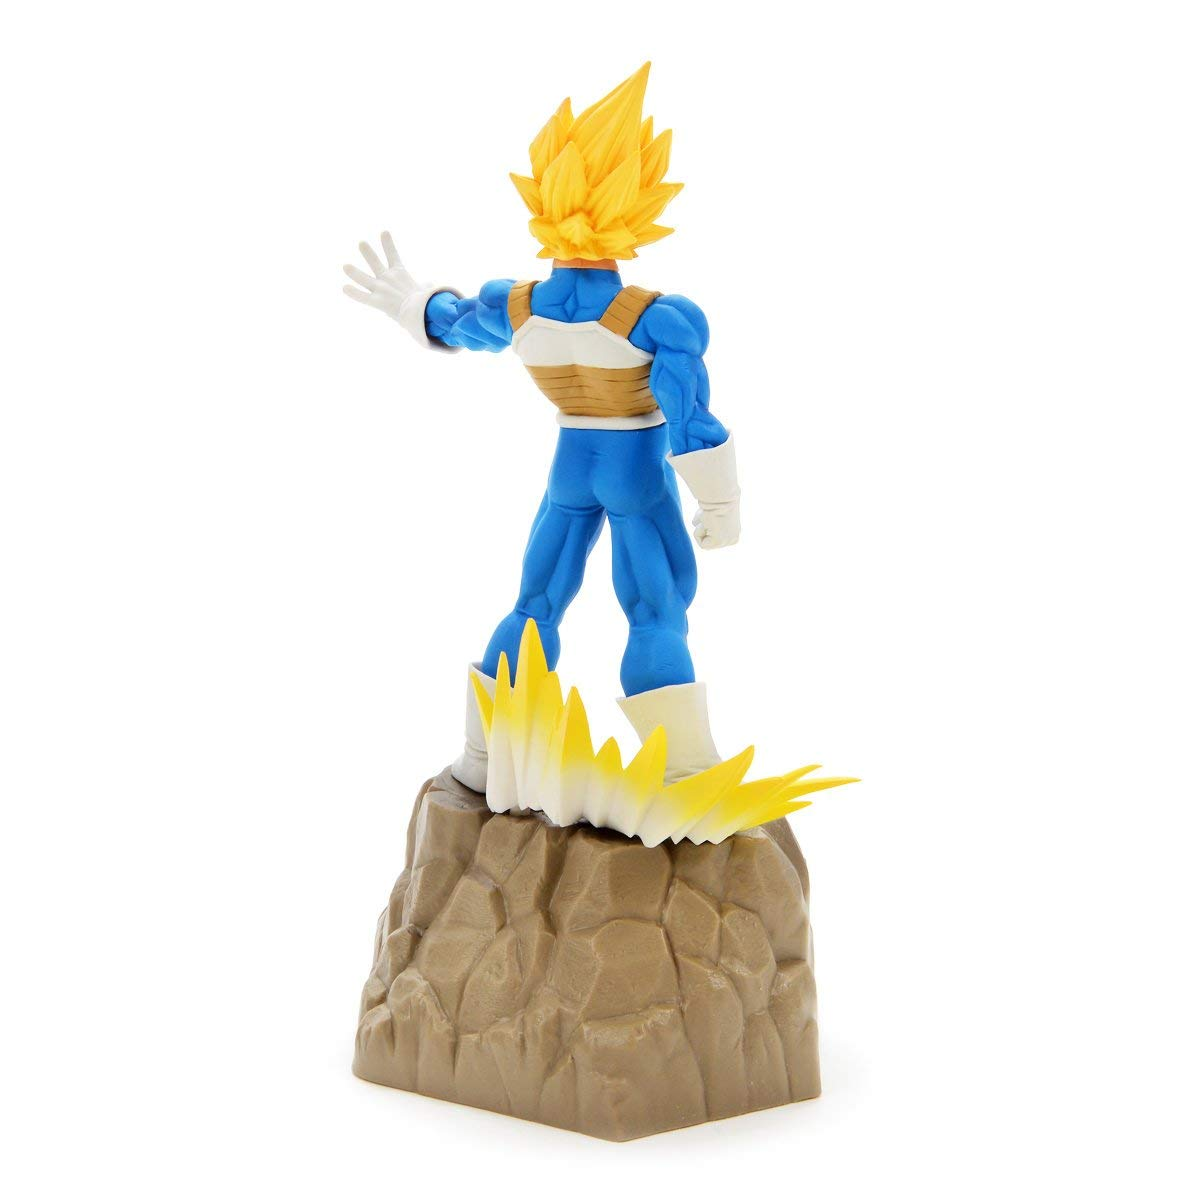 Blue NON Banpresto Dragonball Z Absolute Perfection Figure-Vegeta